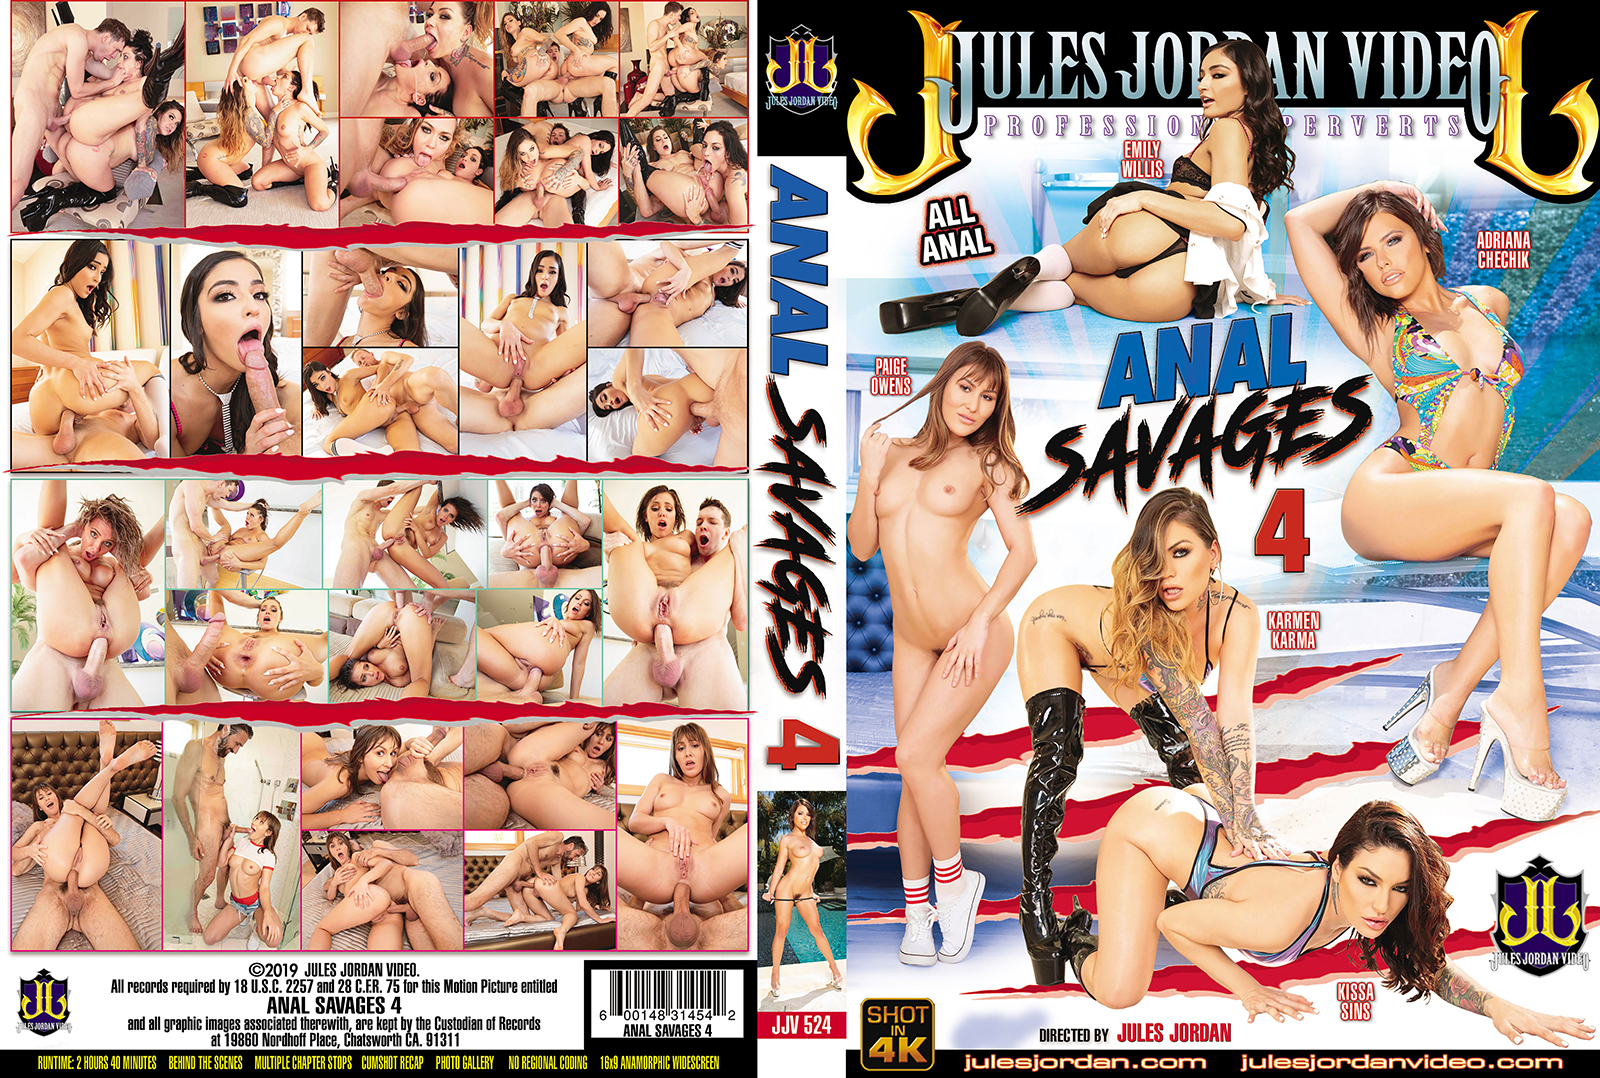 Anal Savages 4 DVD